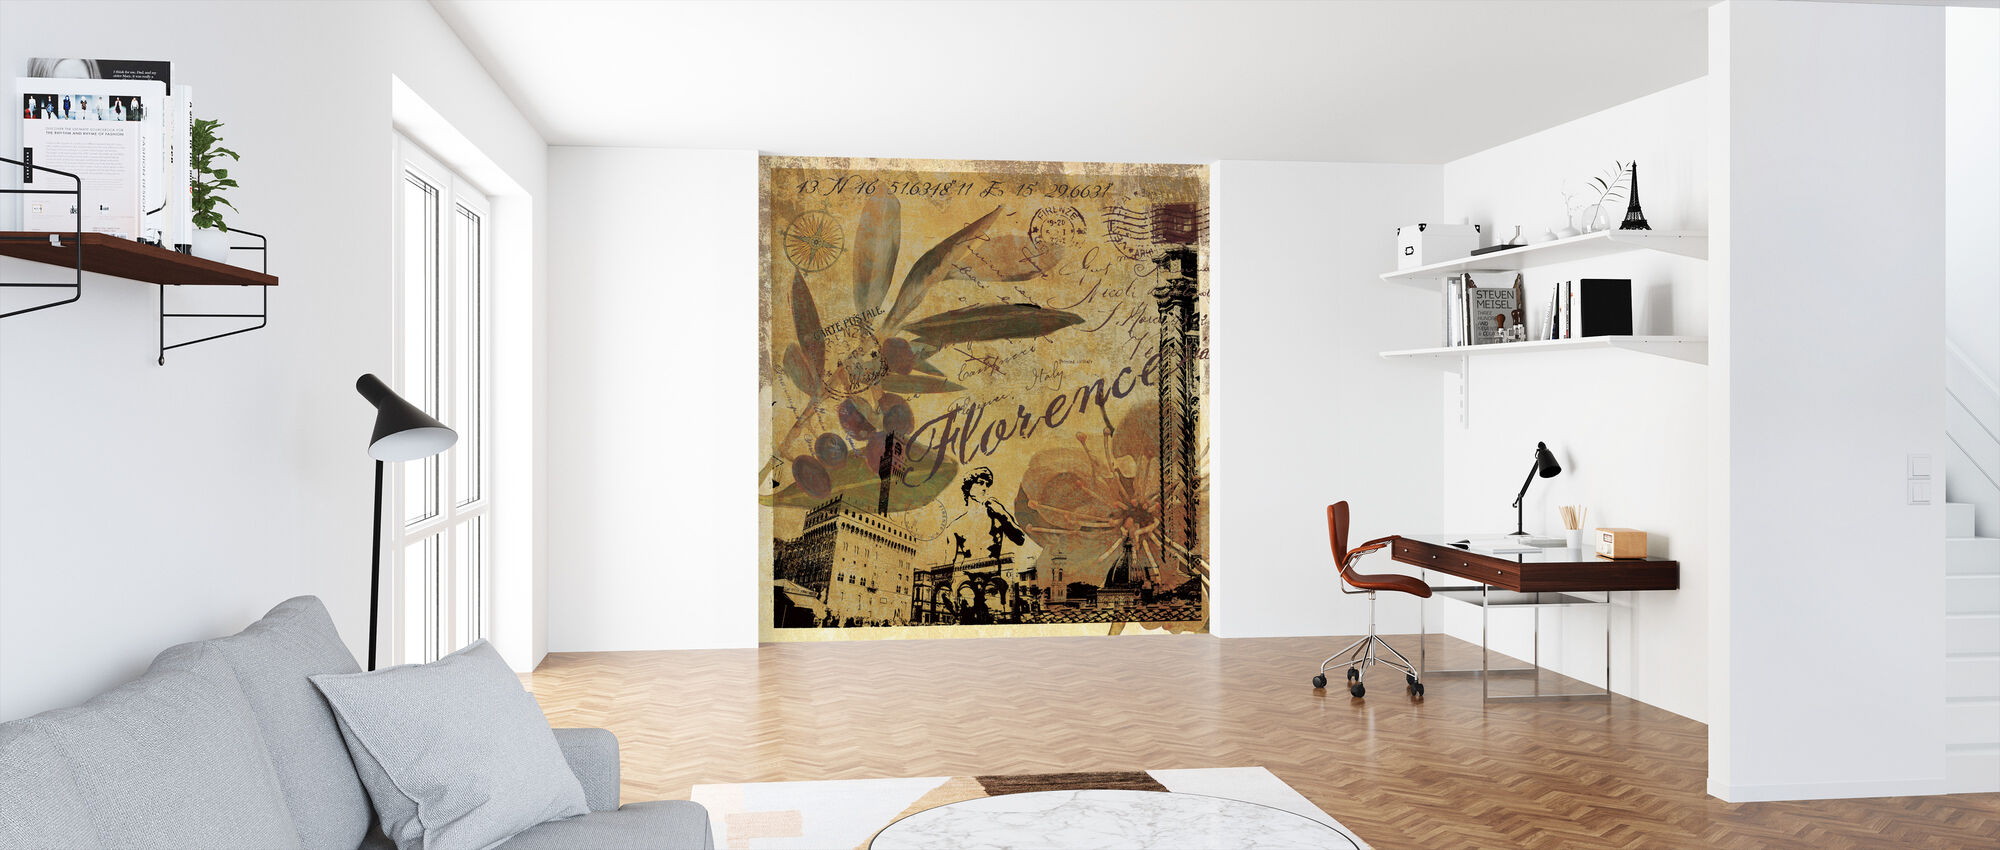 Florence Collage - Wallpaper - Office